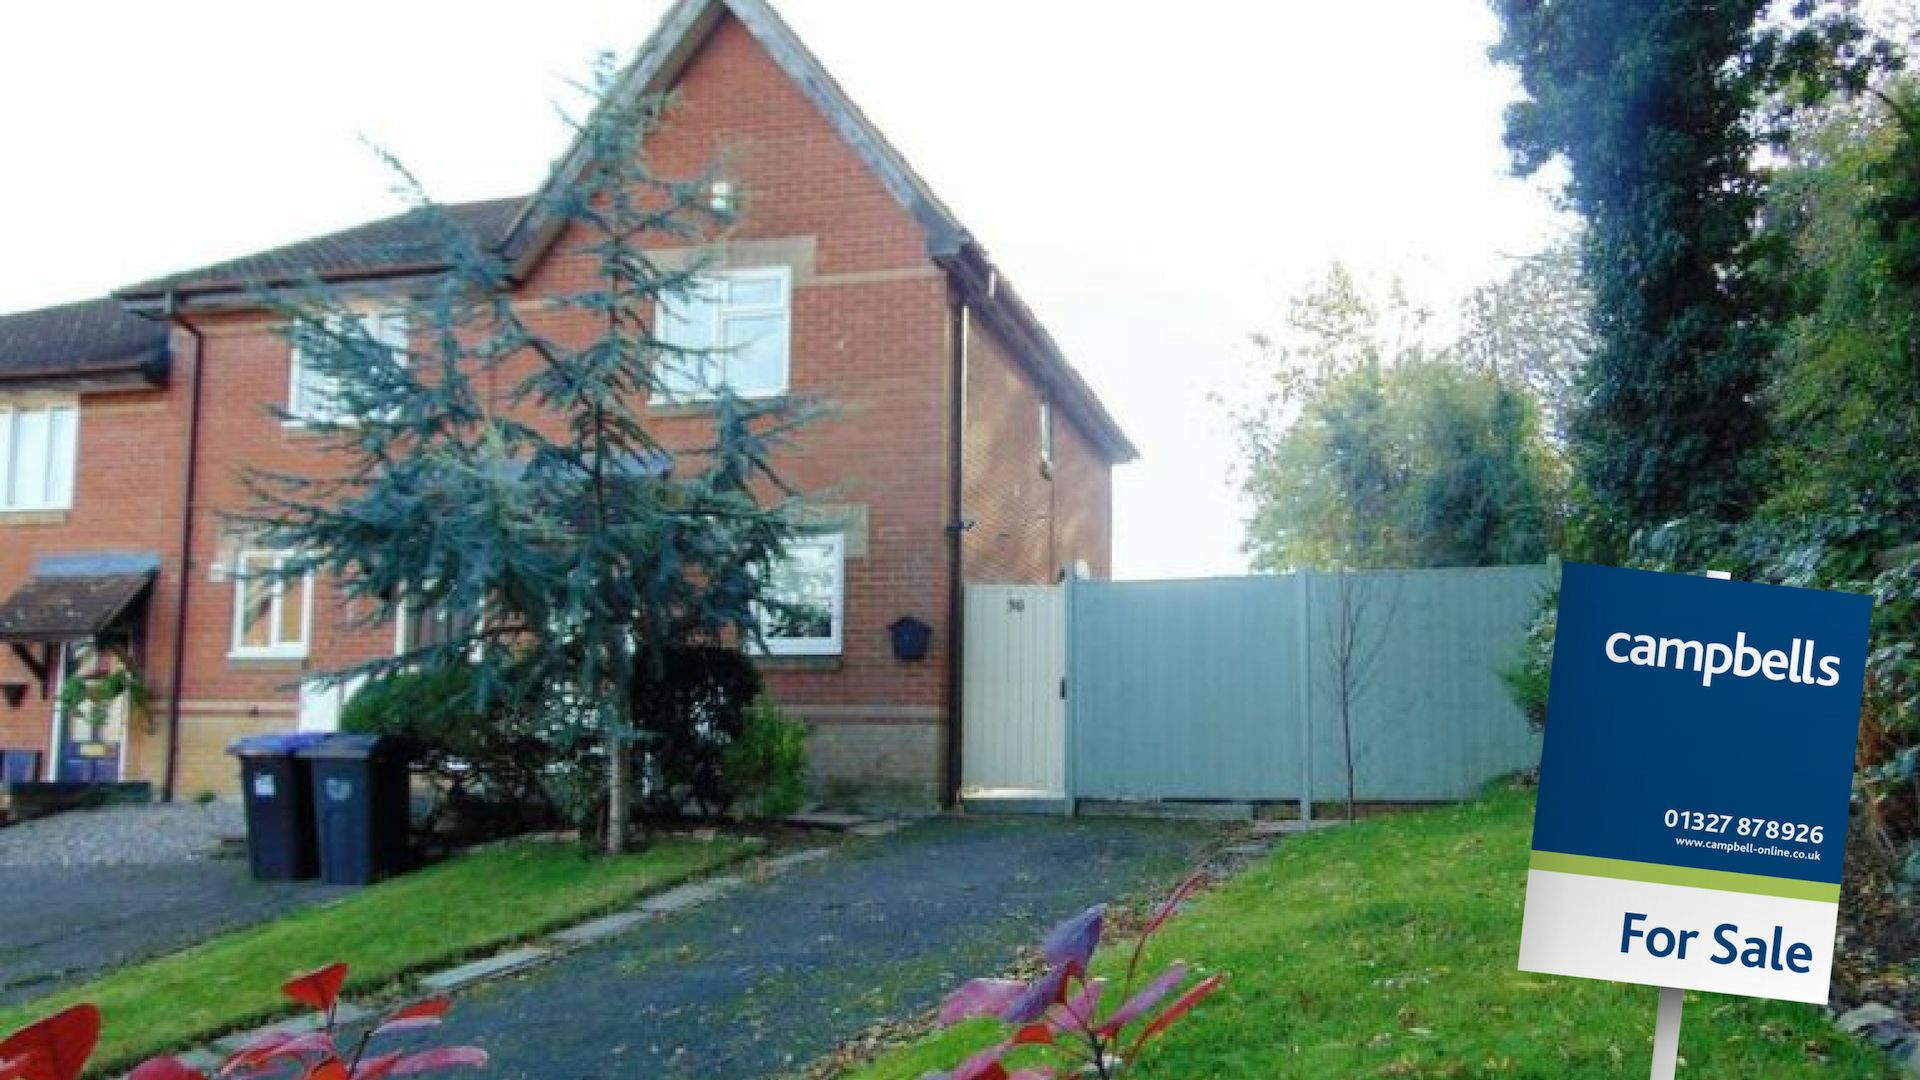 Two Bedroom House For Sale Ashby Fields Daventry This Well Presented